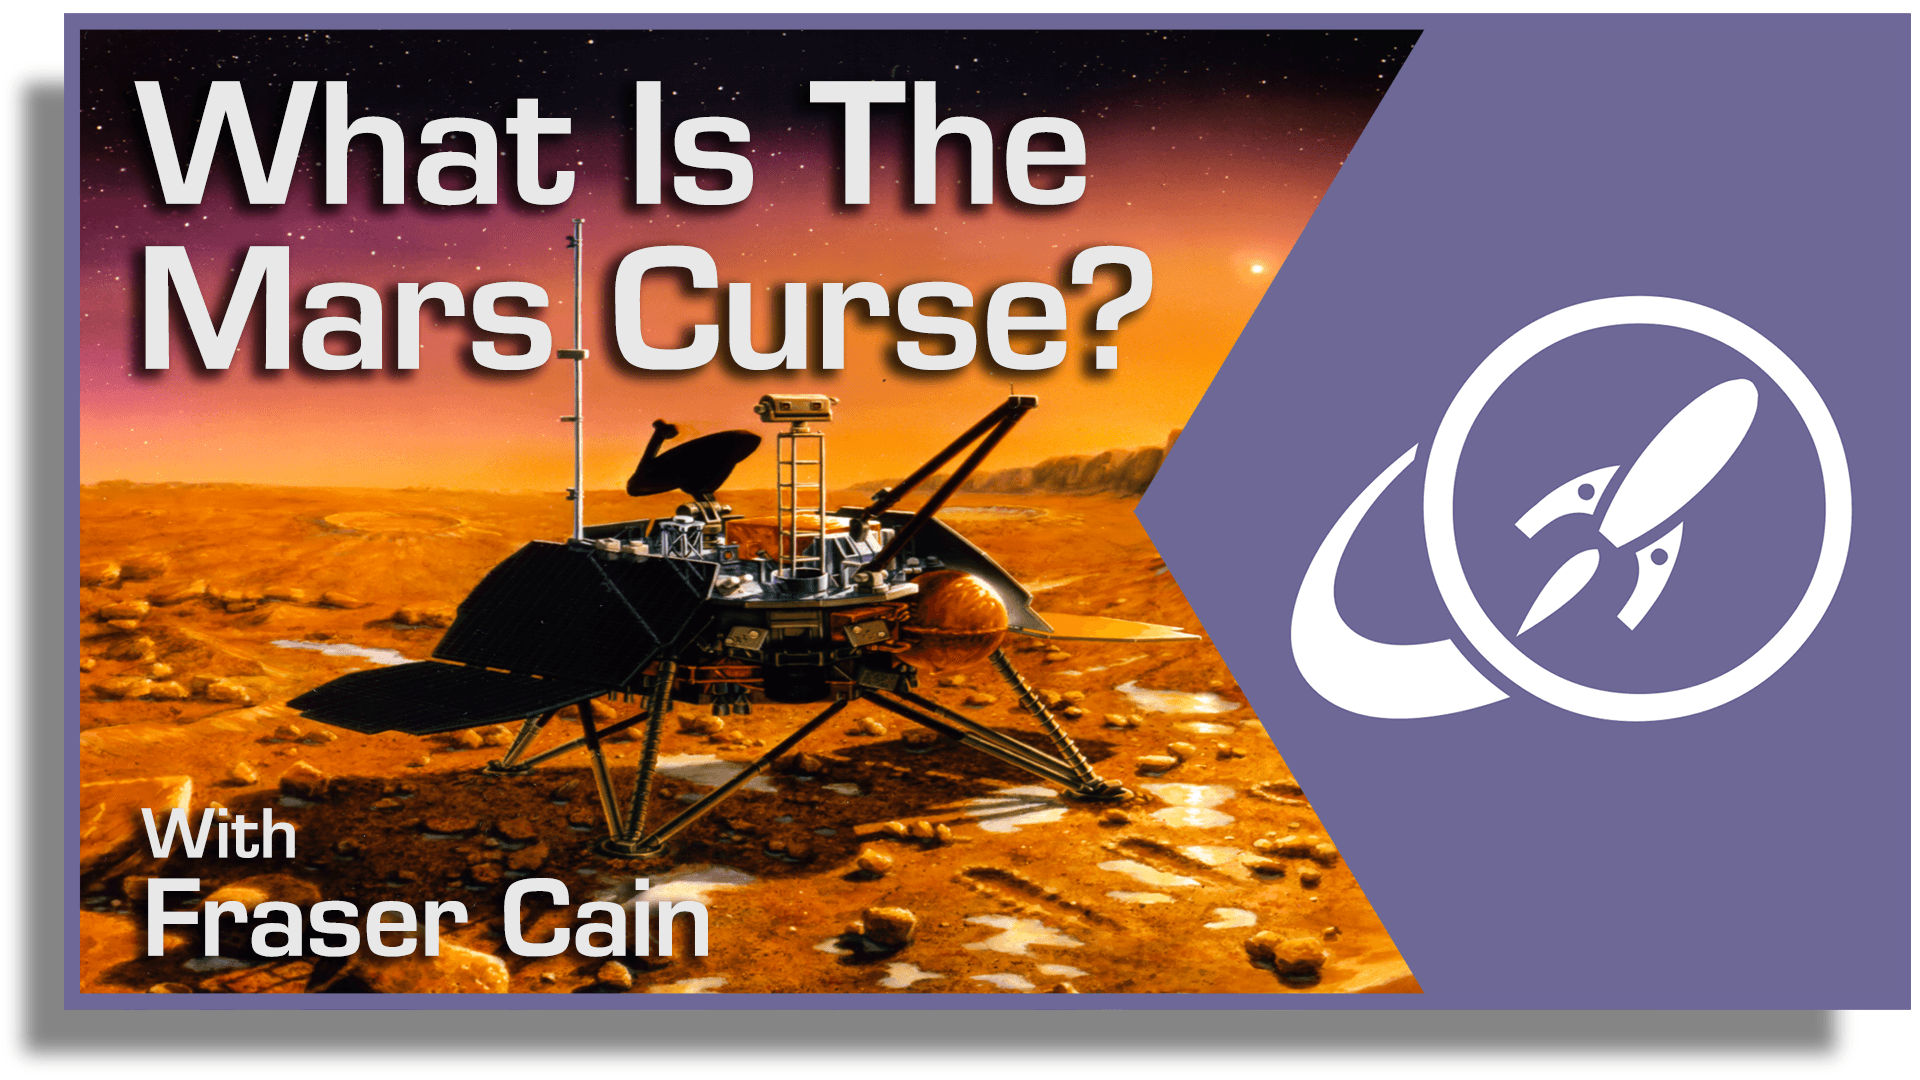 What is the Mars Curse?